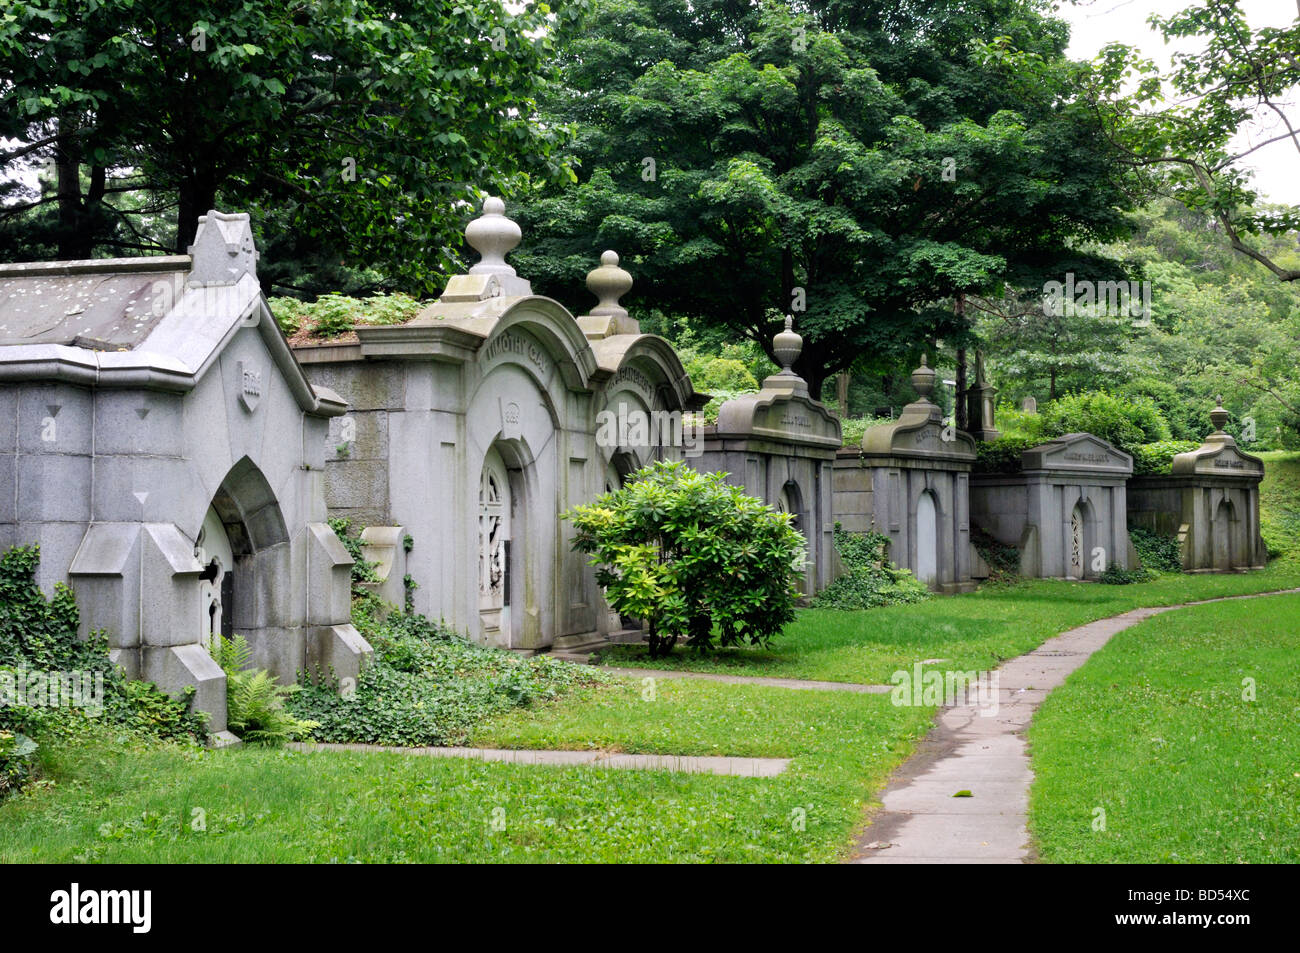 Row of old mausoleums in cemetery - Stock Image